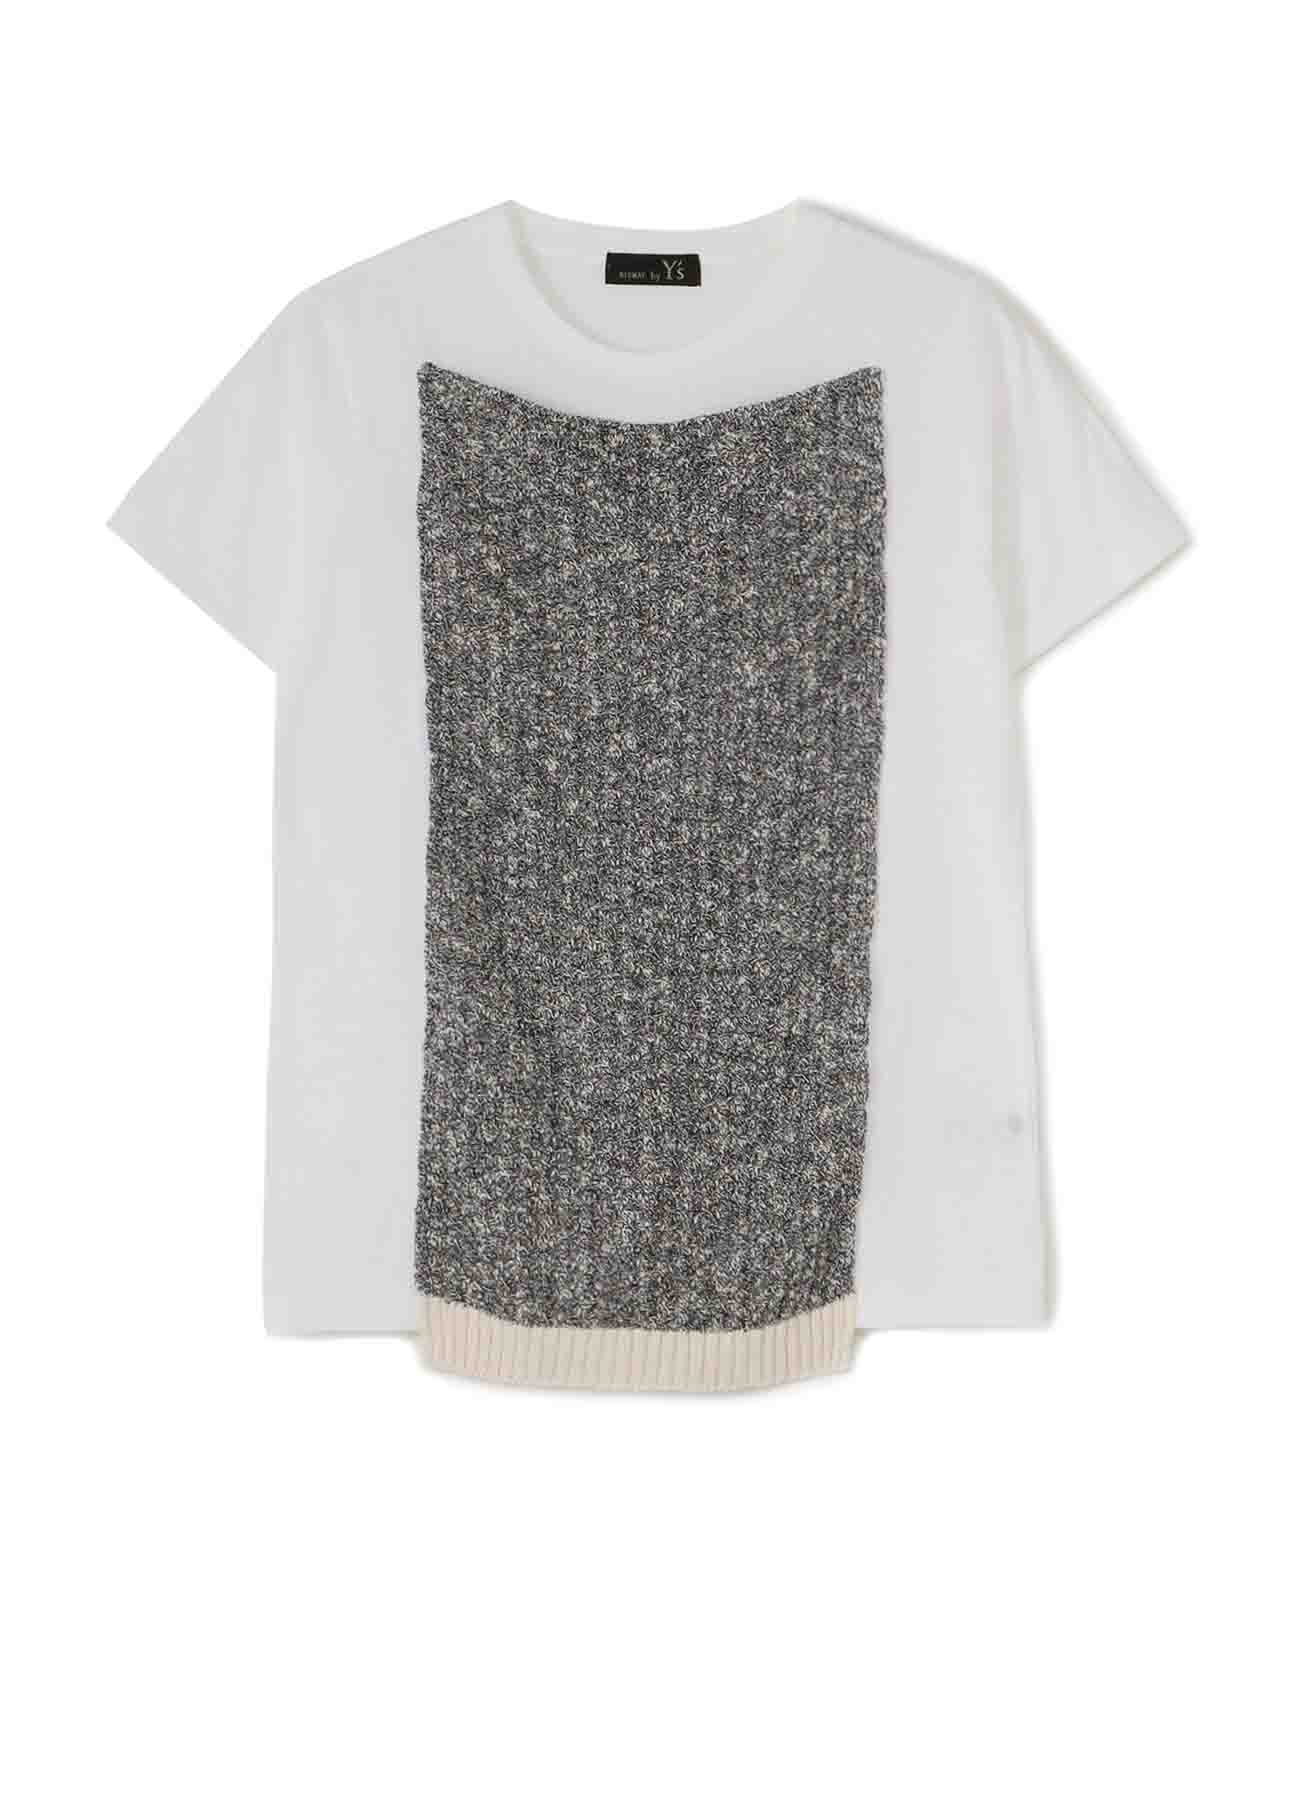 RISMATbyY's? COTTON PLAIN STITCH KNIT ATTACH SHORT SLEEVE T-SHIRT